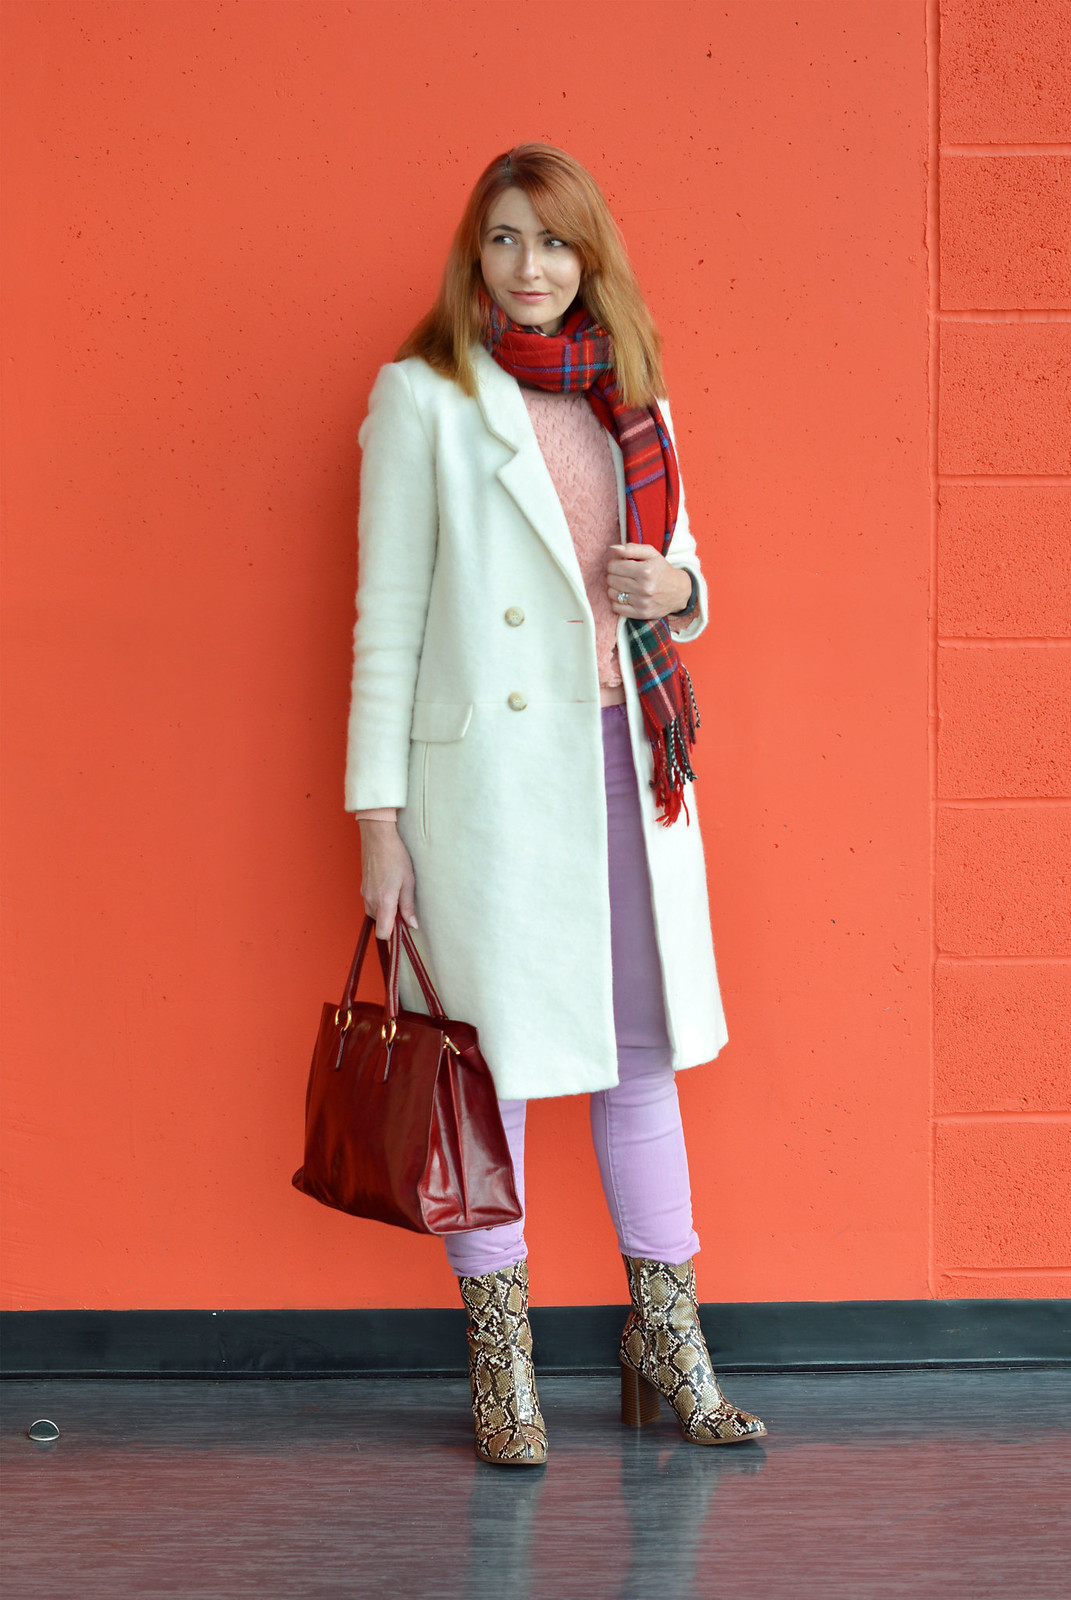 Winter brights of red, pink, lilac and white | Not Dressed As Lamb